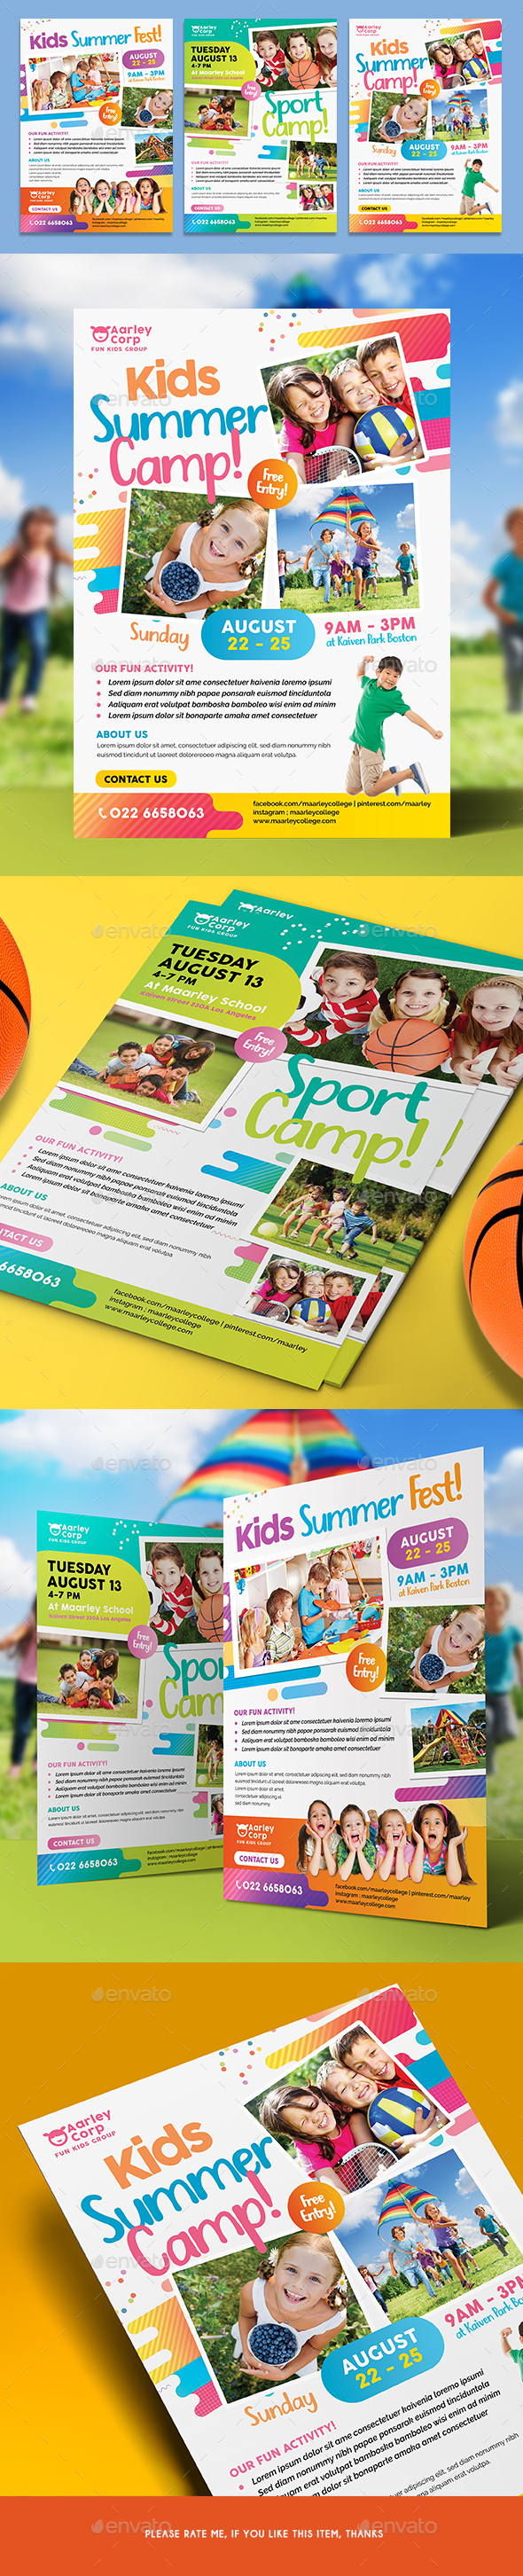 Kids Activities Flyer - Corporate Flyers